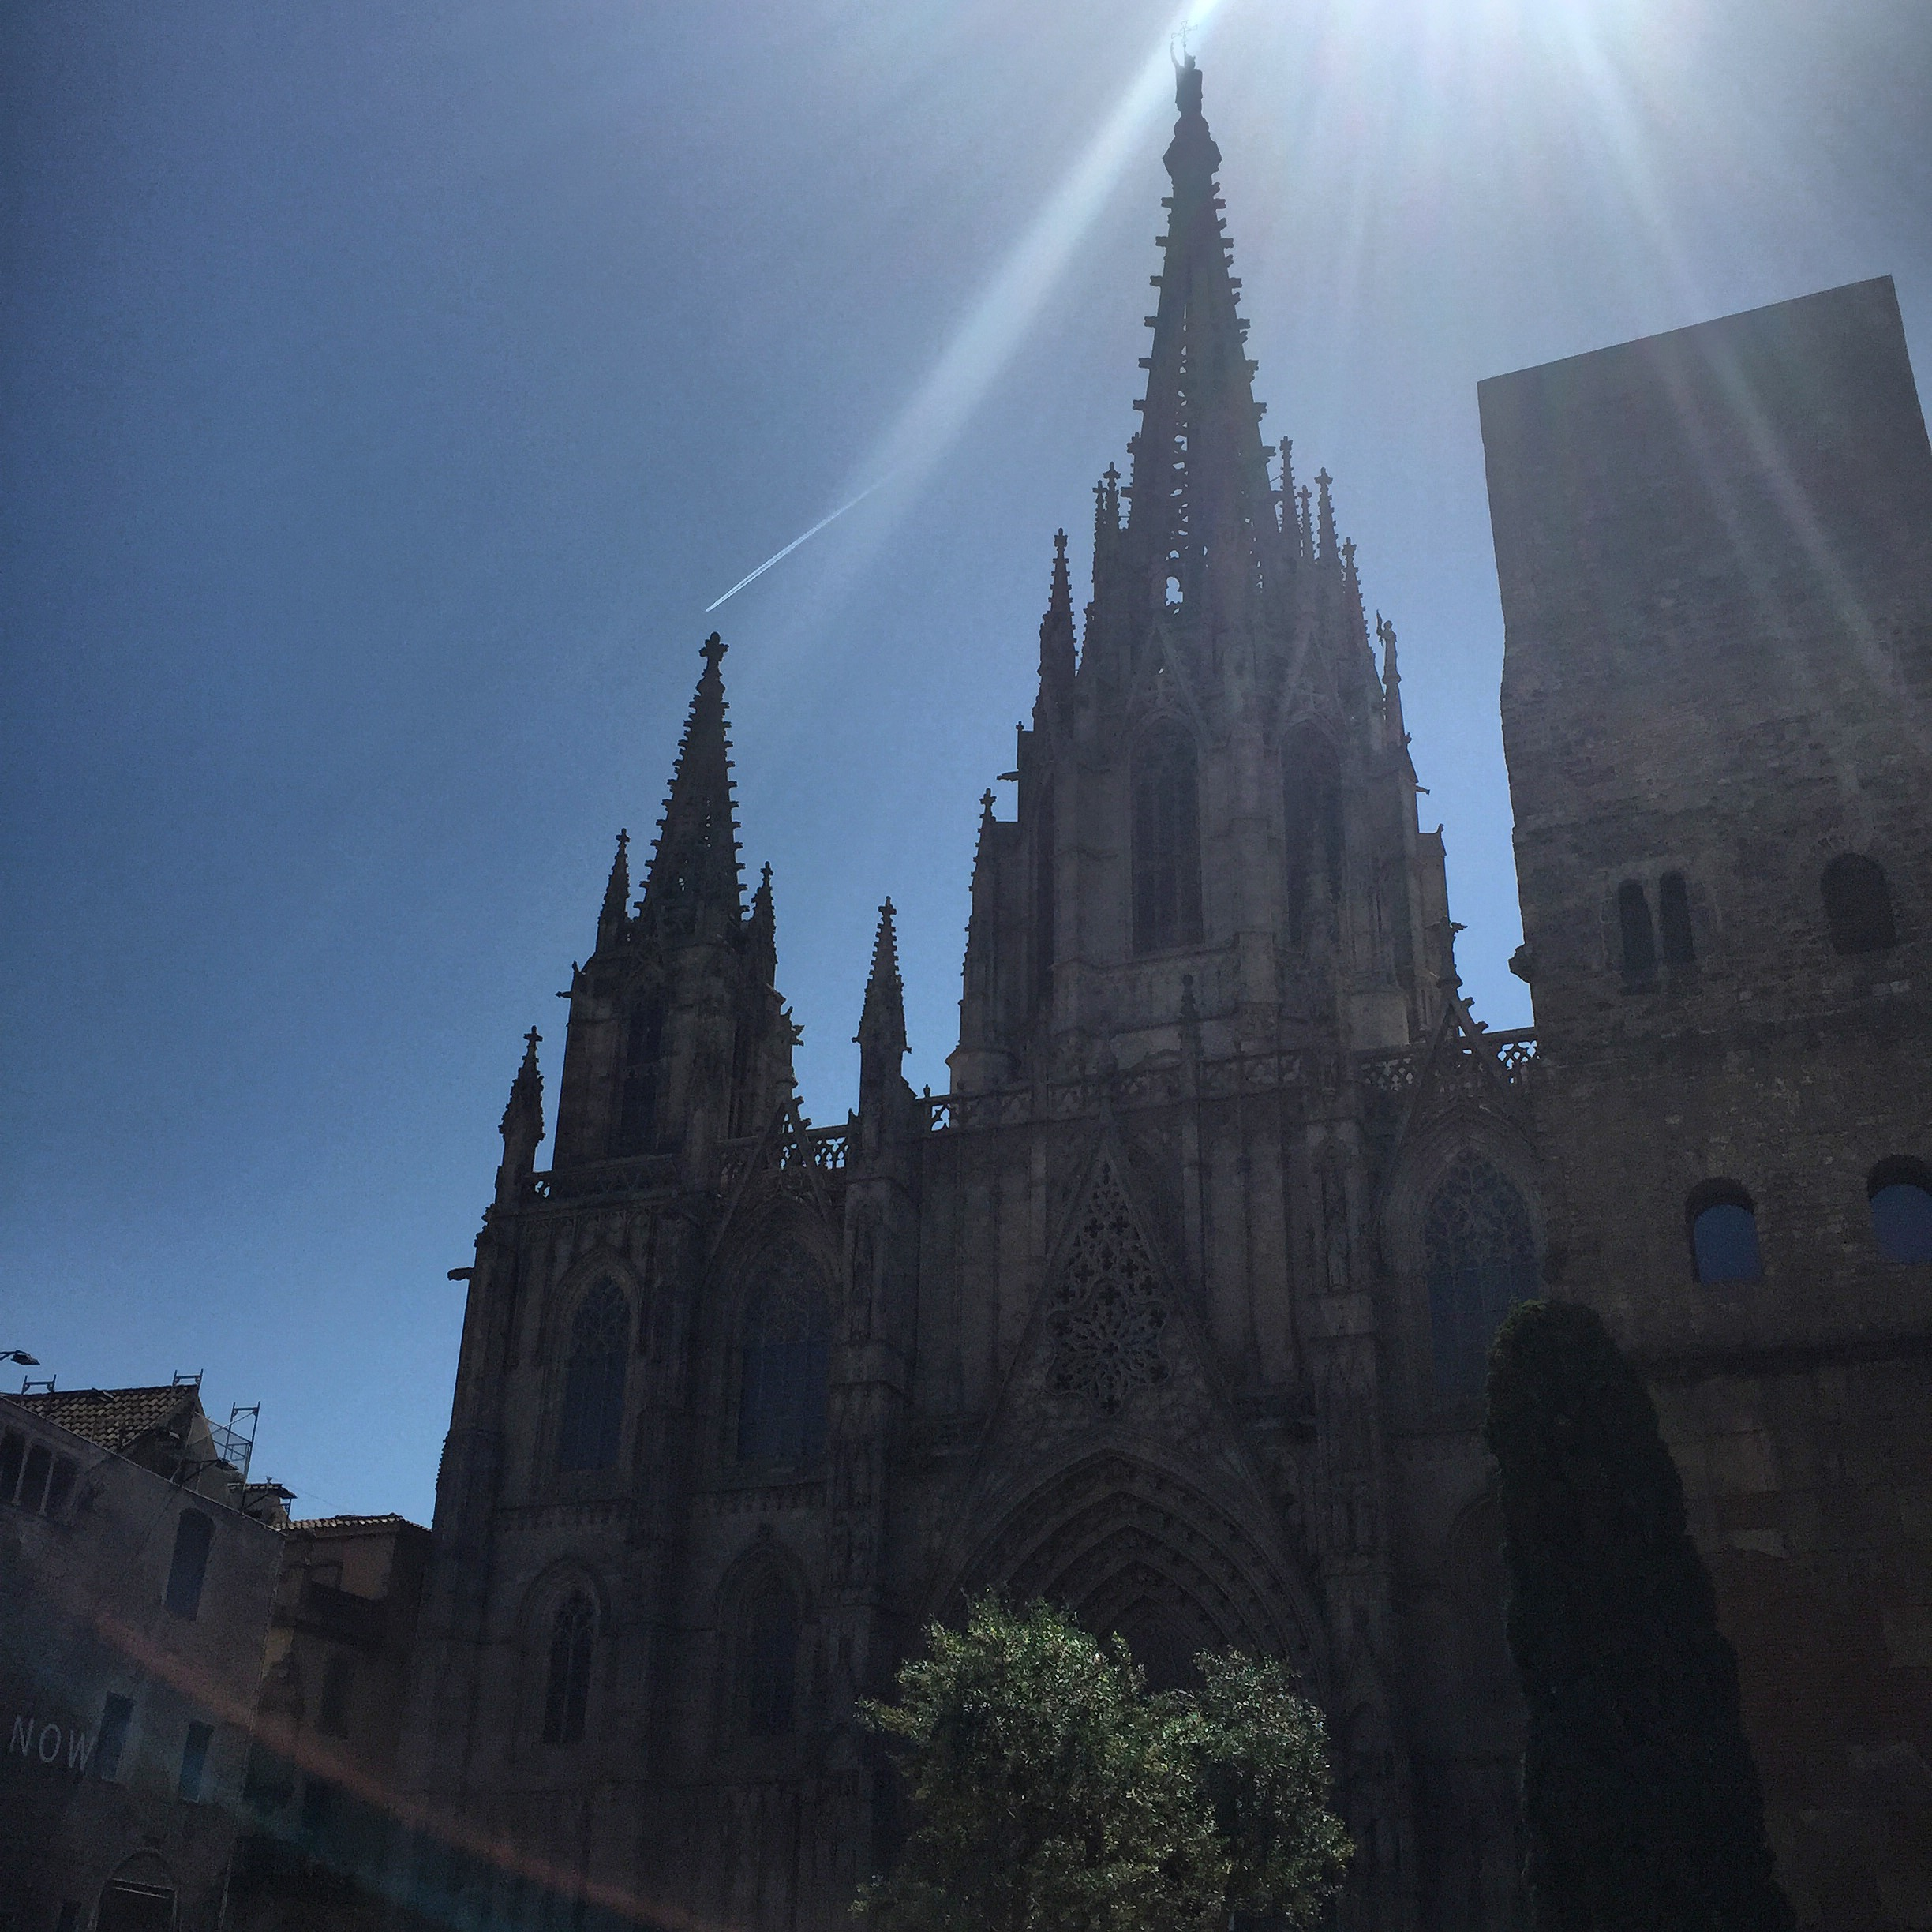 La Catedral on a good no filter day.